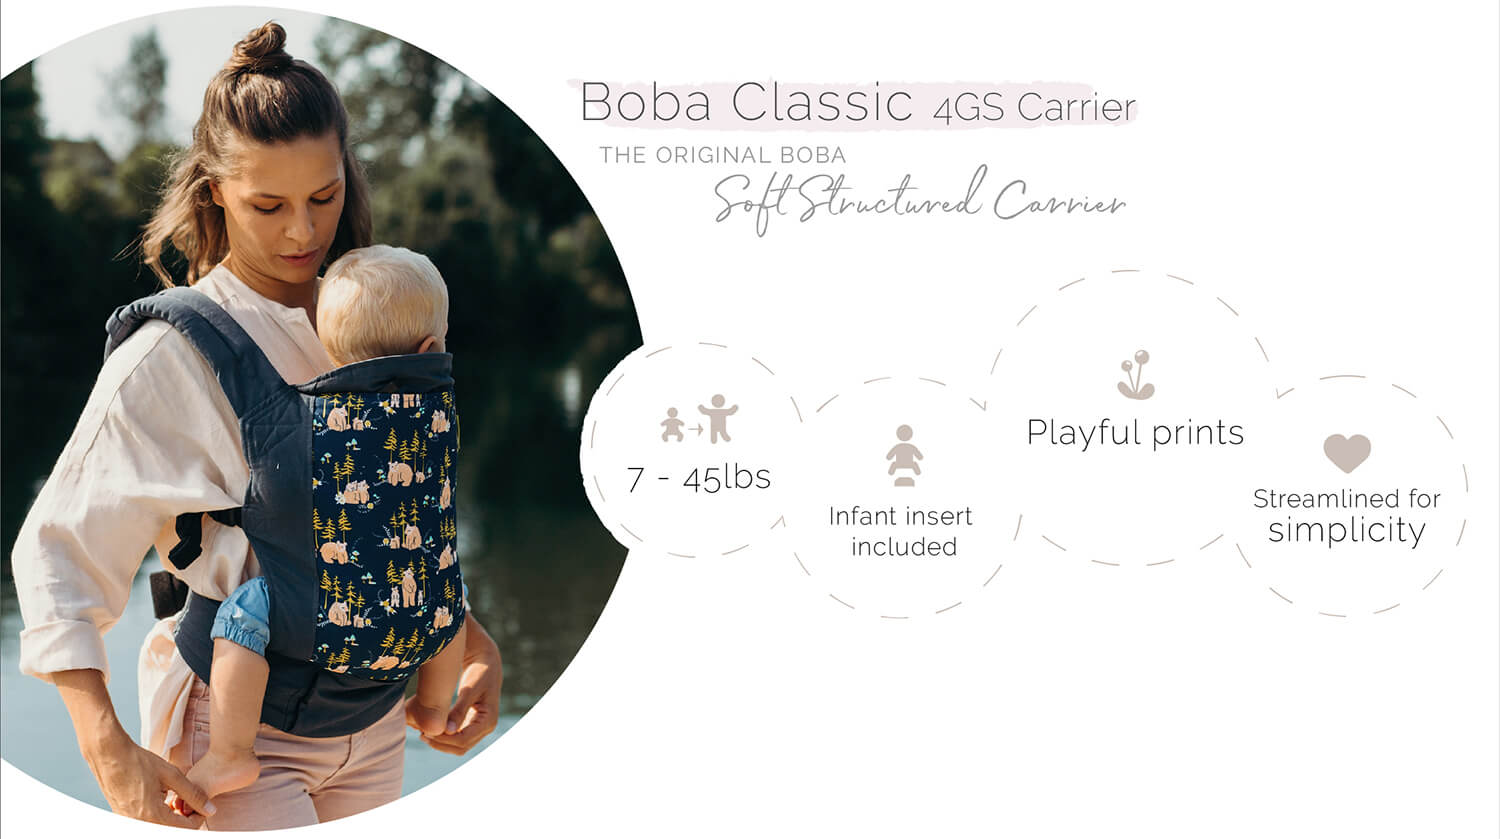 This image shows Boba's four main products - wrap, classic carrier, X & Air. Descriptions are of the differences between each product.